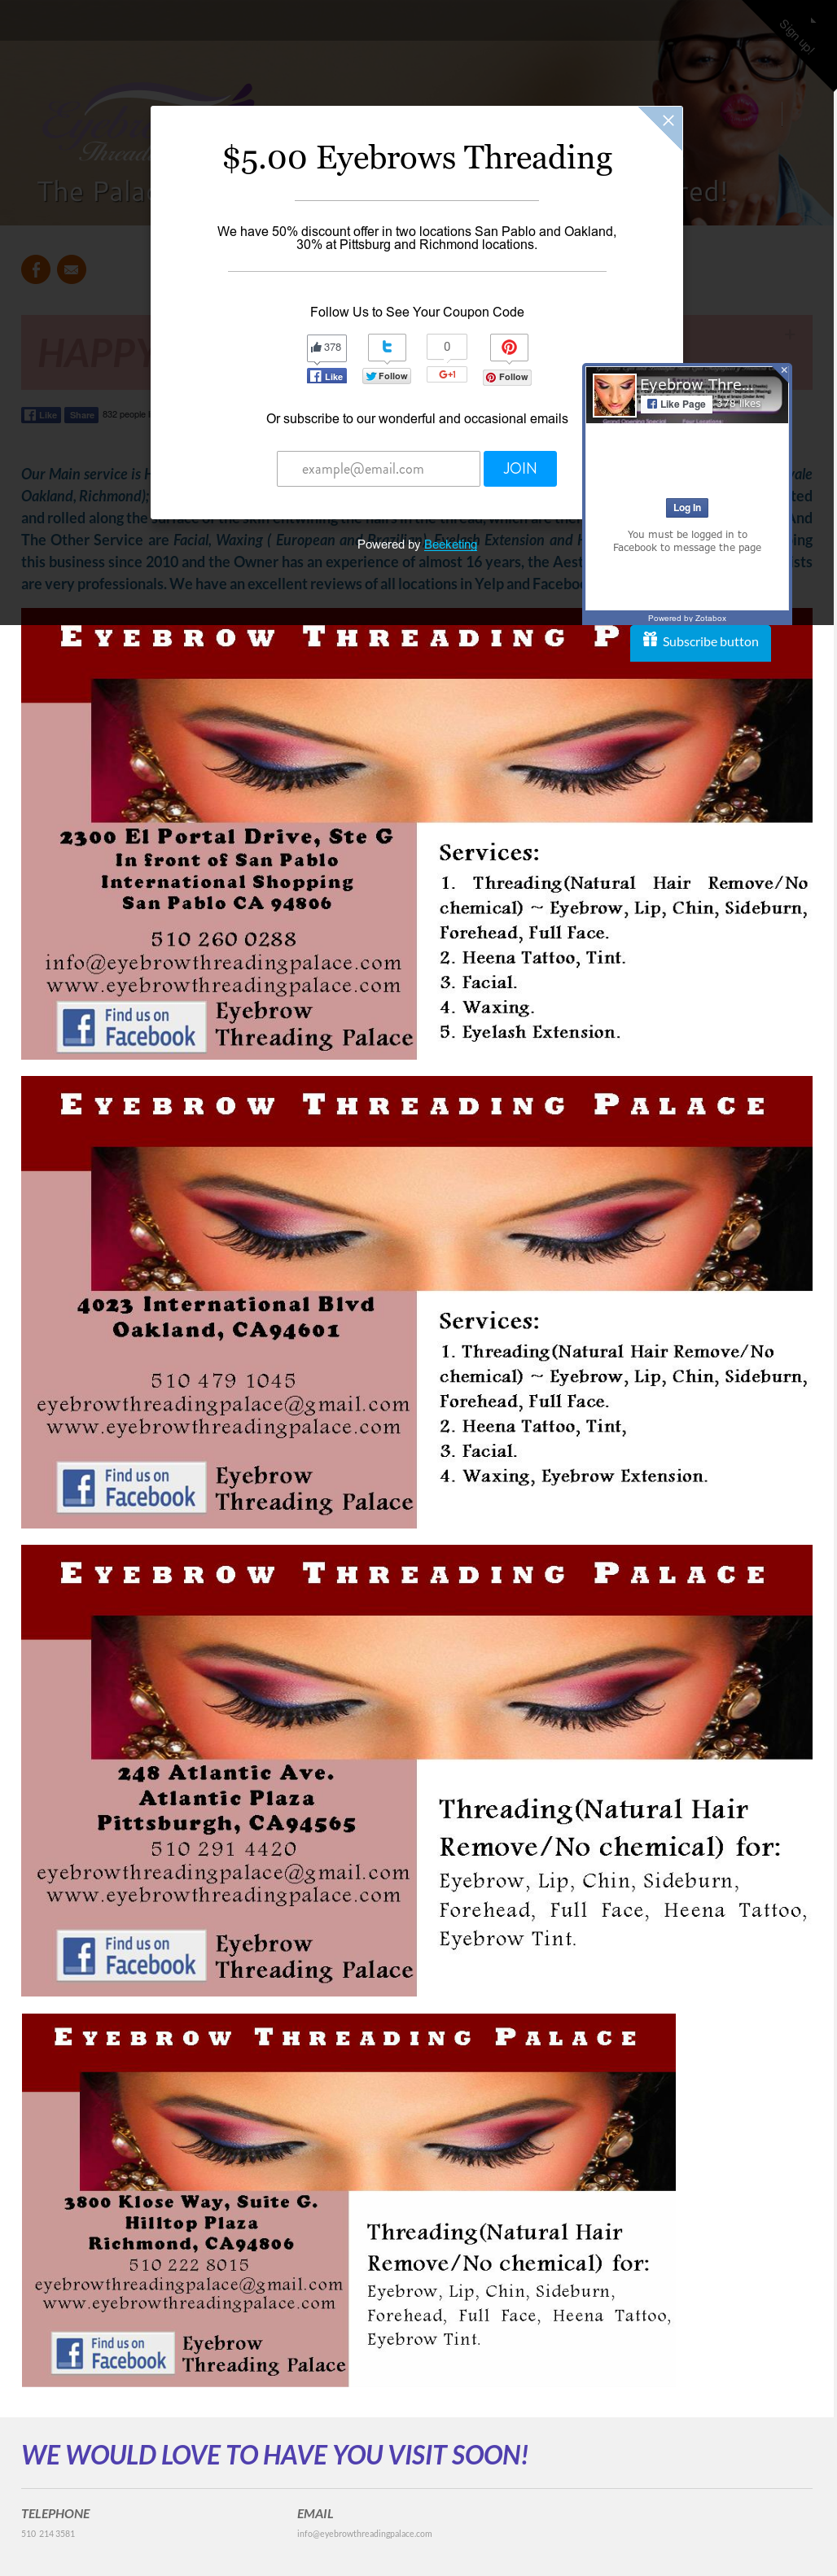 Eyebrow Threading Palace Competitors Revenue And Employees Owler